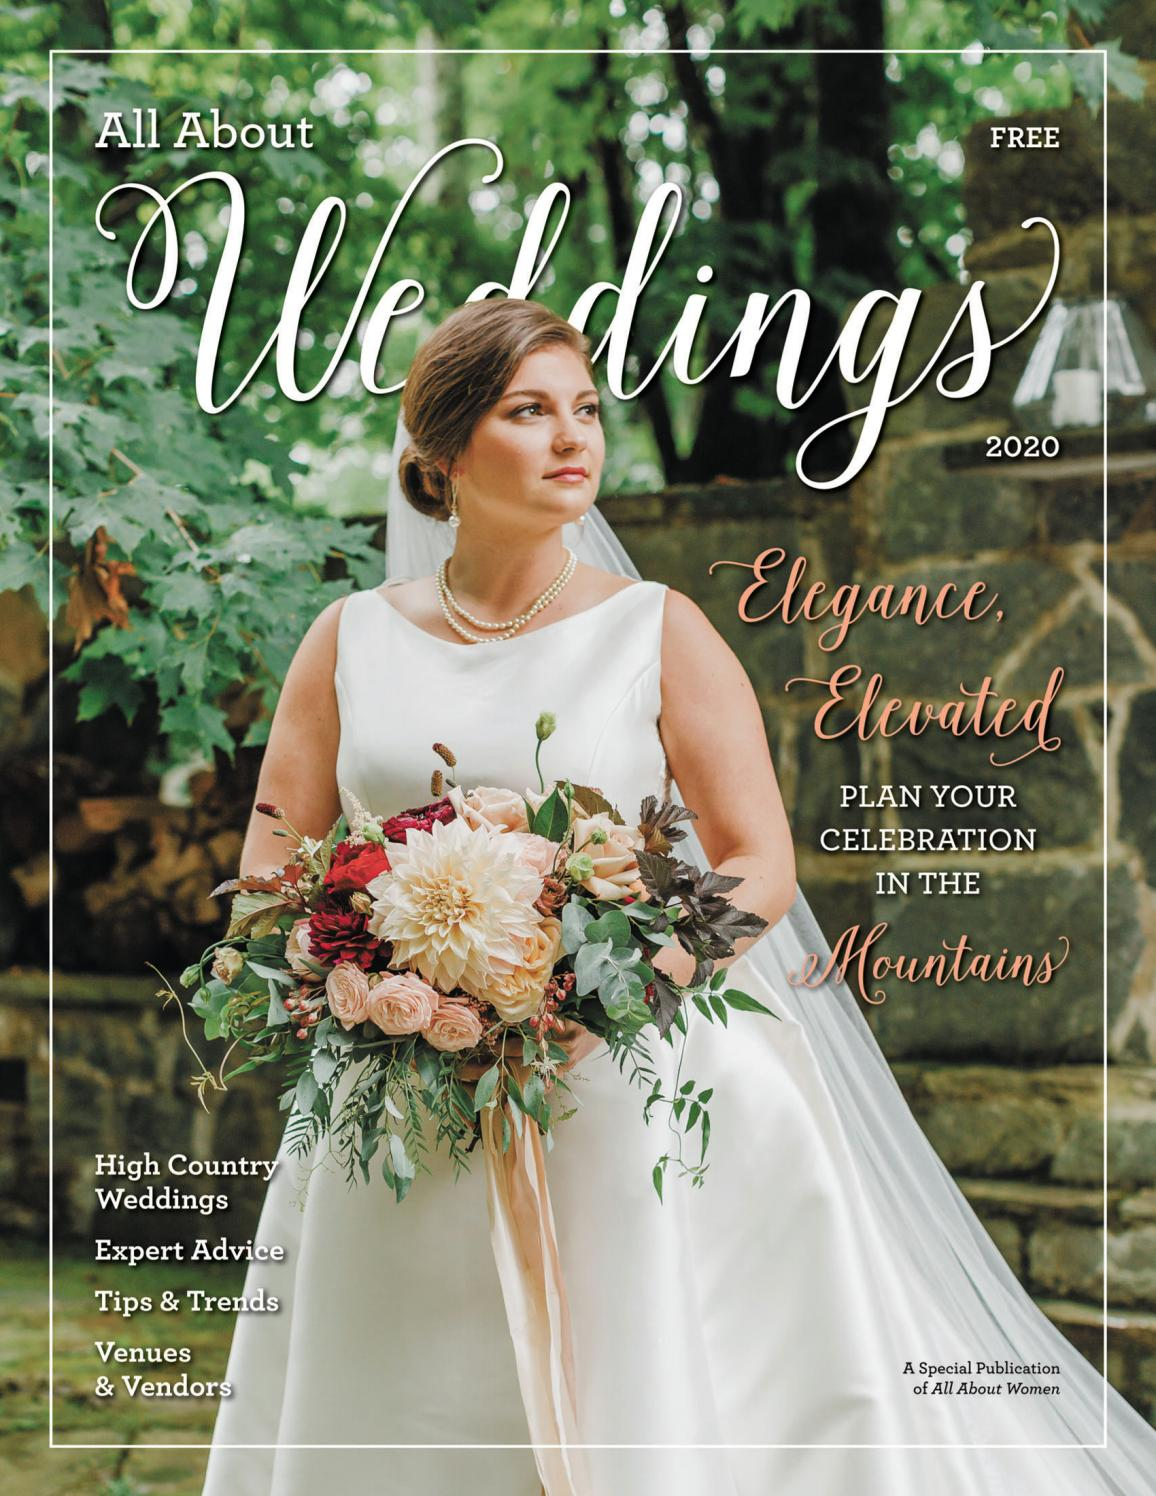 All About Weddings 2020 by Mountain Times Publications - issuu